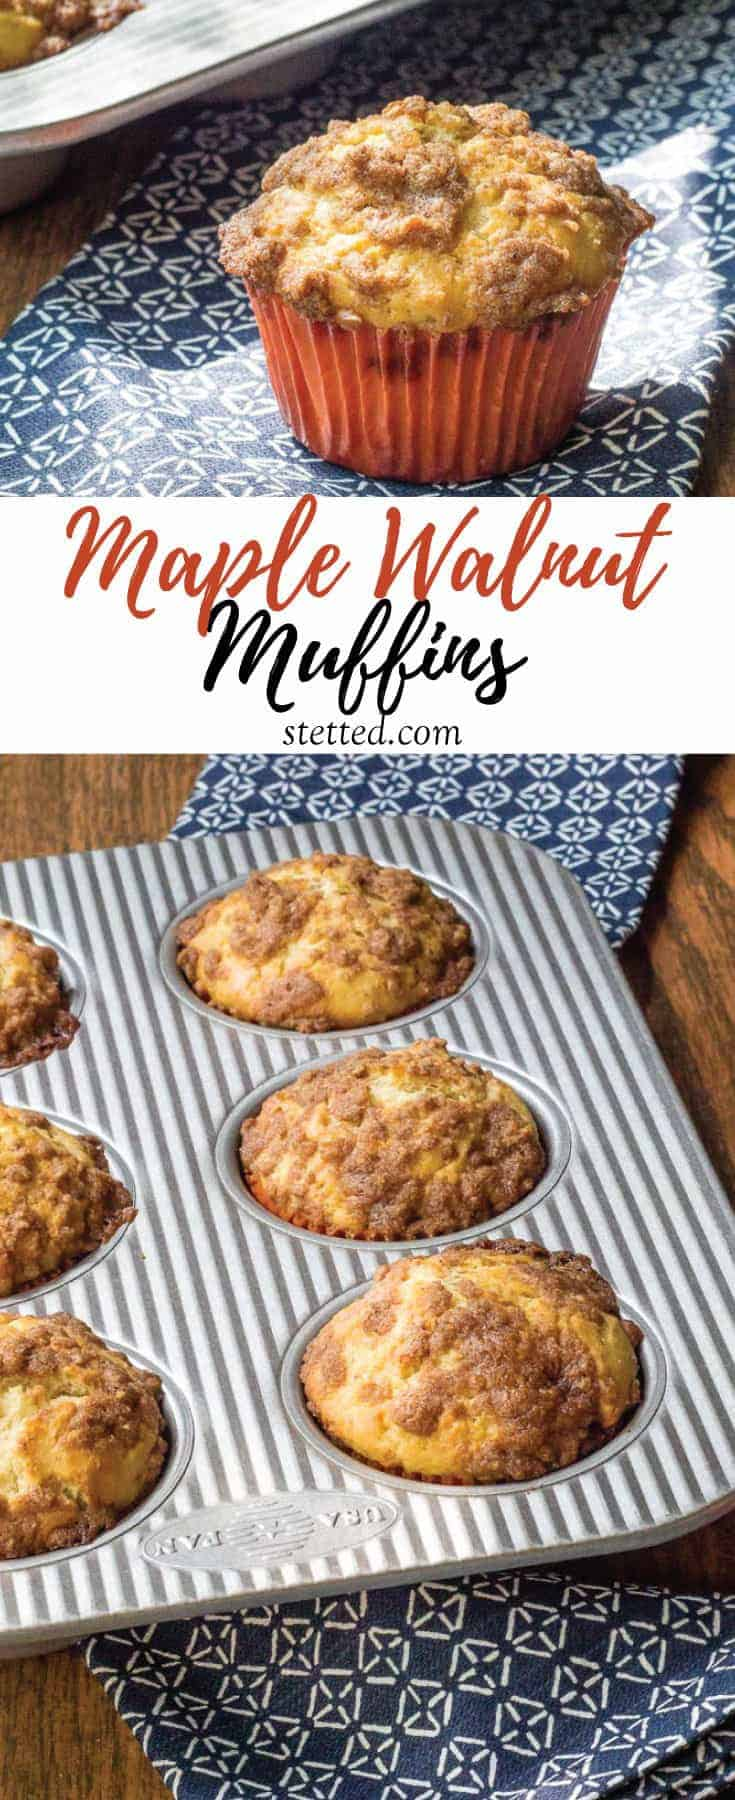 Maple walnut muffins have sweet maple flavor and crunchy walnuts. Skip the coffeehouse and make them at home!